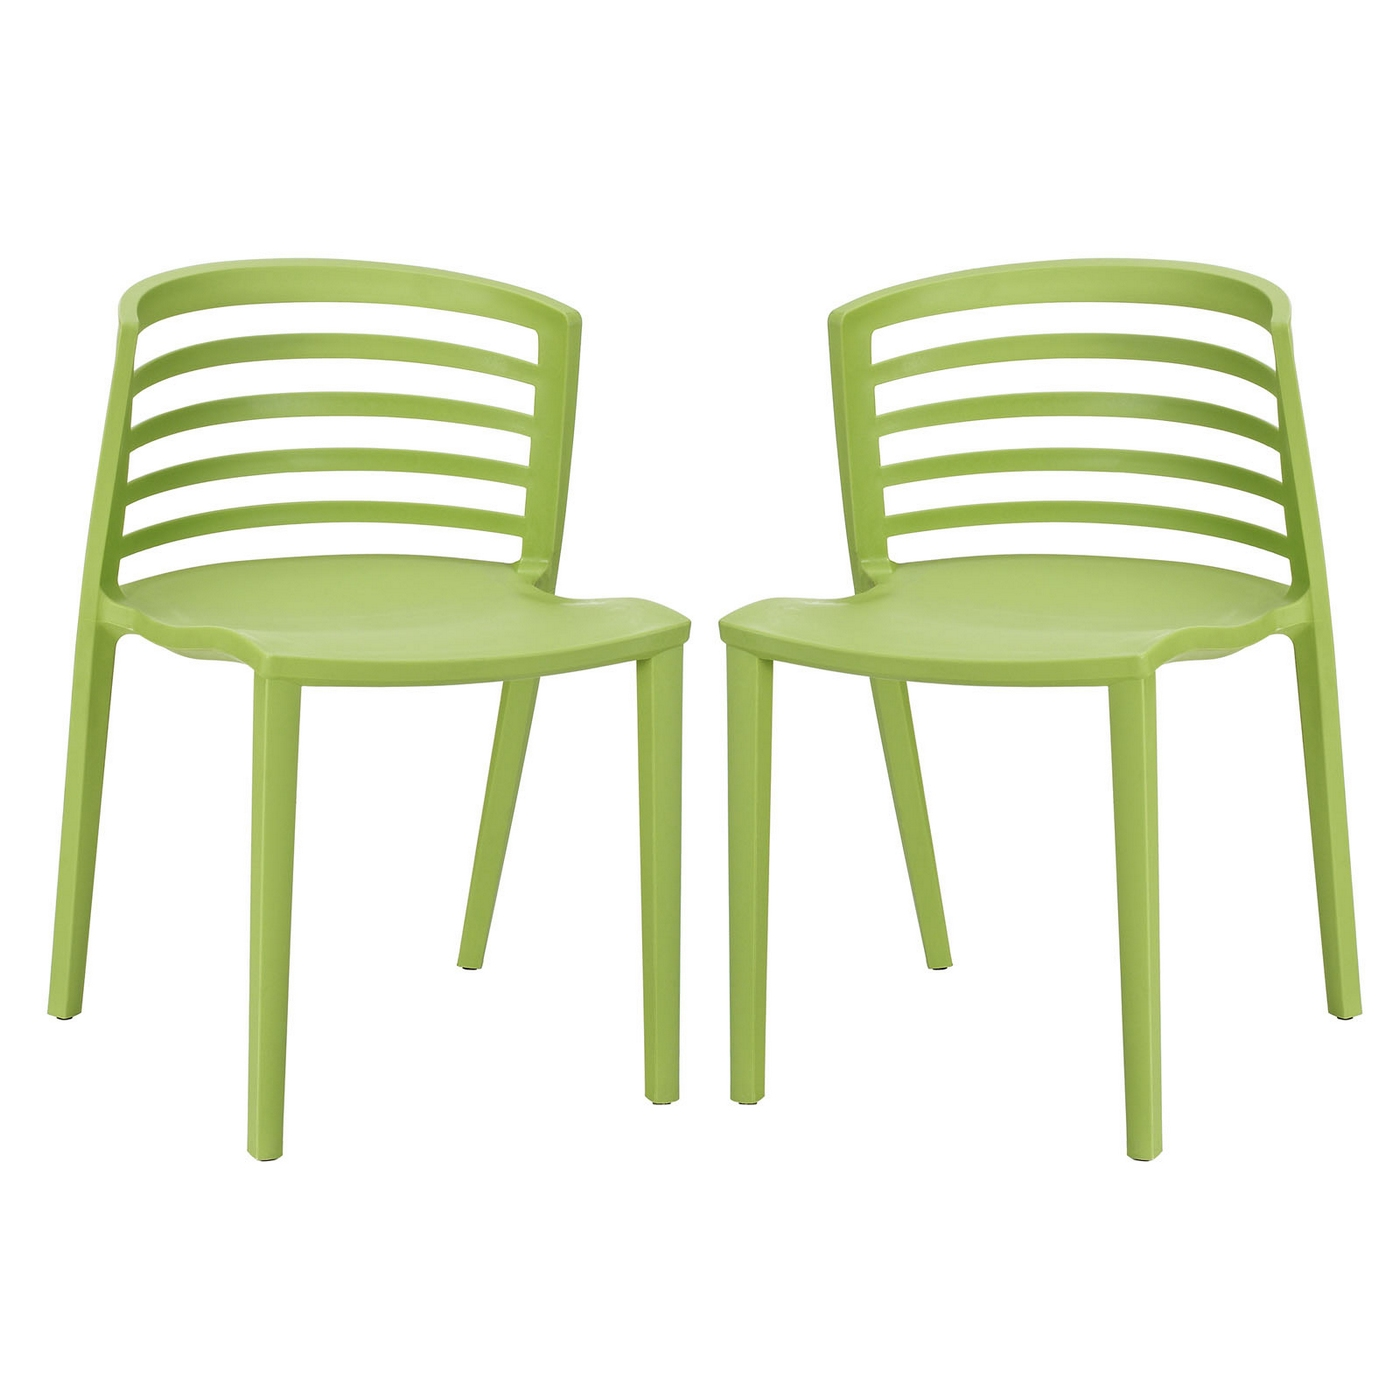 stackable resin chairs green wedding chair covers belfast curvy contemporary molded plastic dining